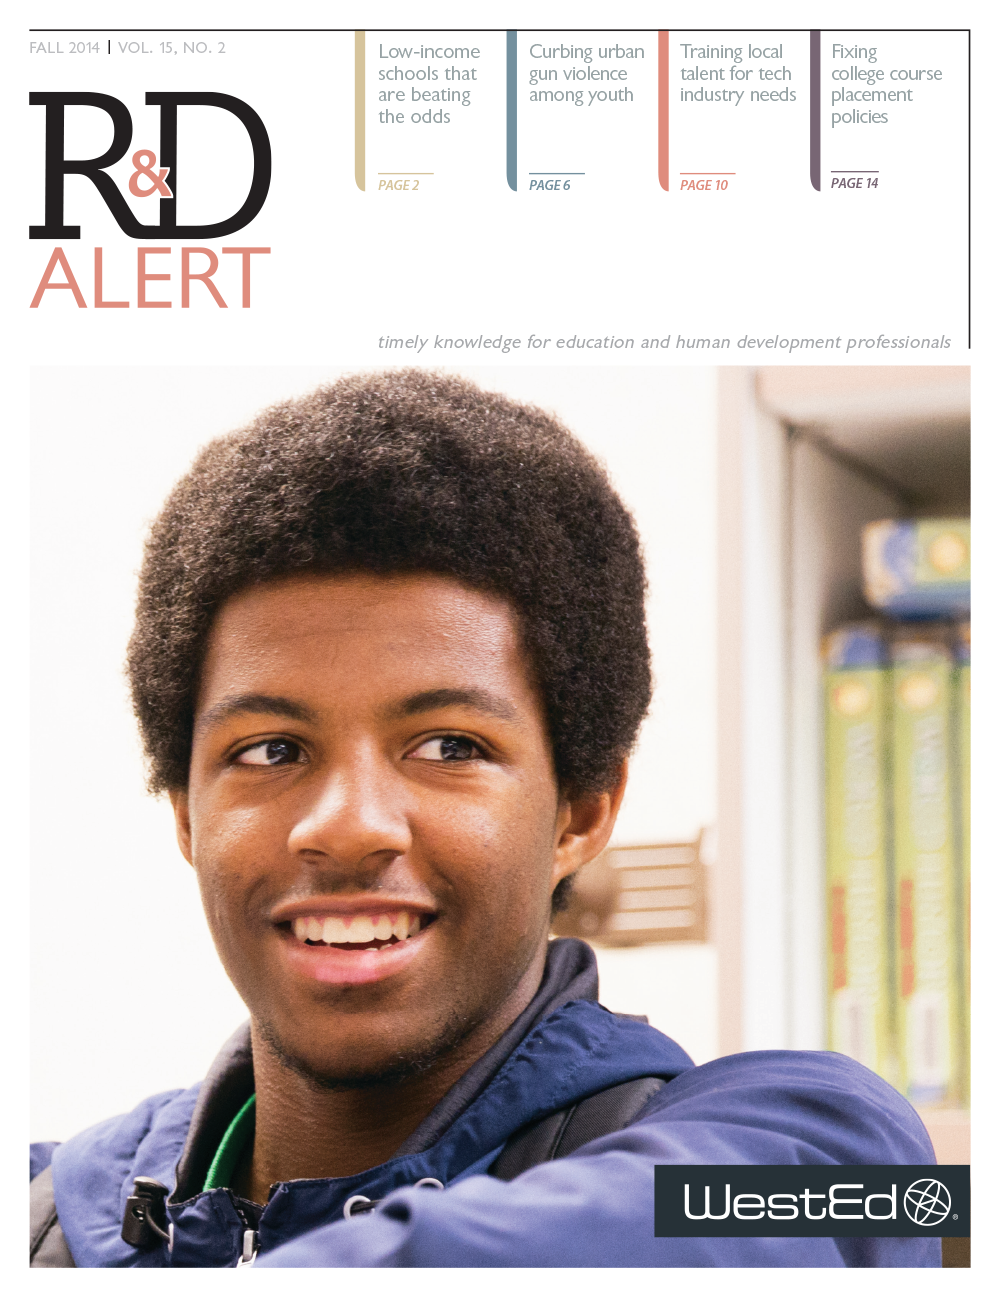 Cover image of the R&D Alert Newsleter 15.2 Fall 2014